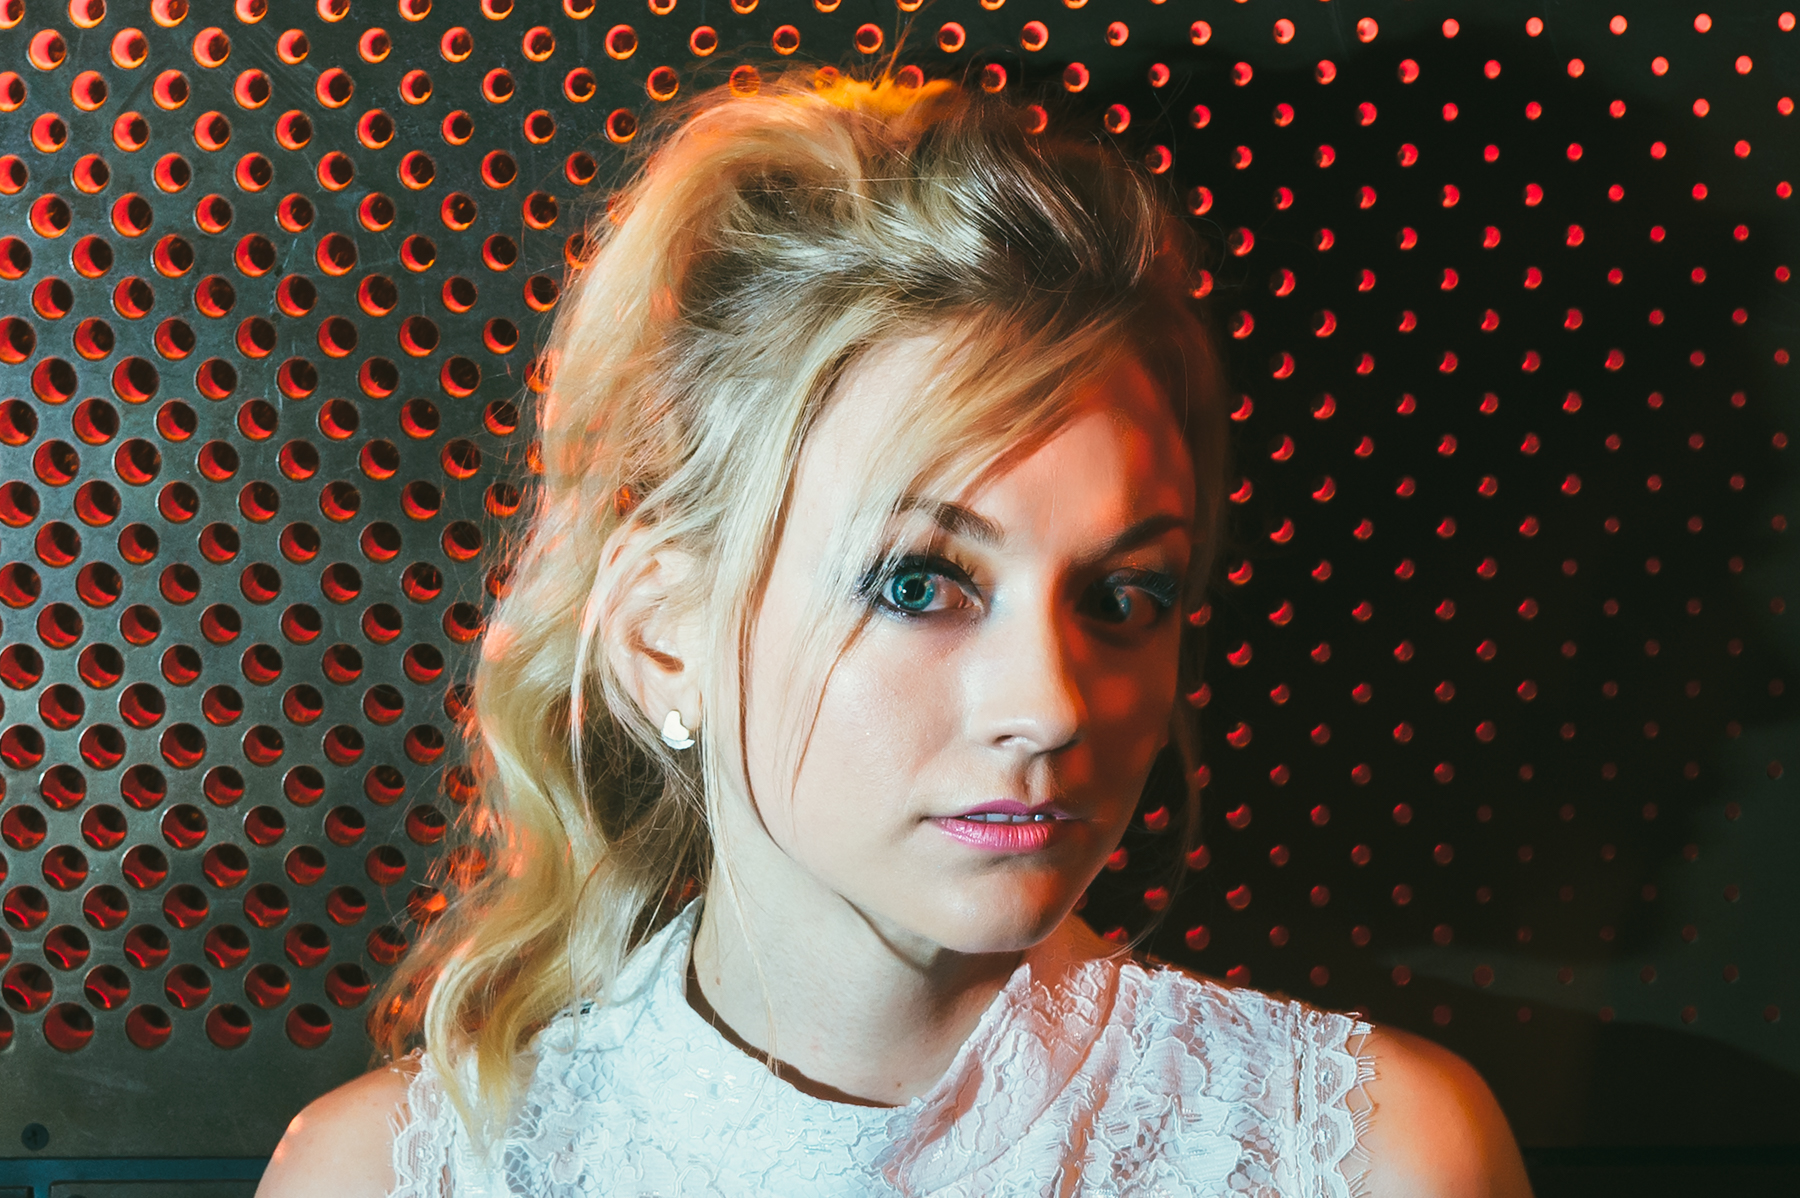 The Walking Dead's Emily Kinney photographed by Chad Kamenshine